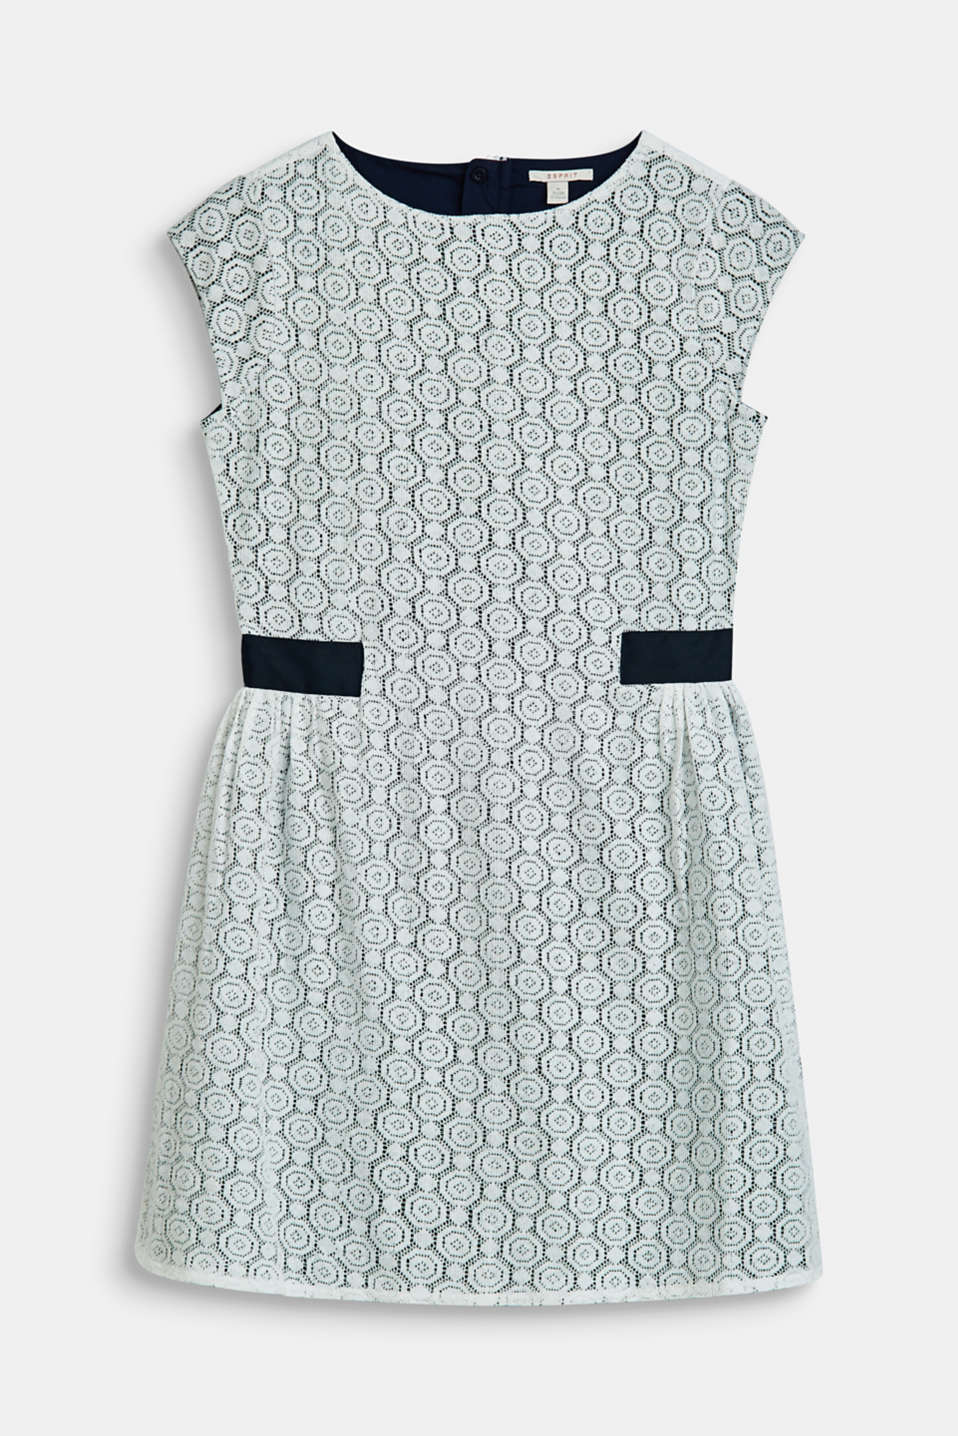 Esprit - Lace dress with cotton lining